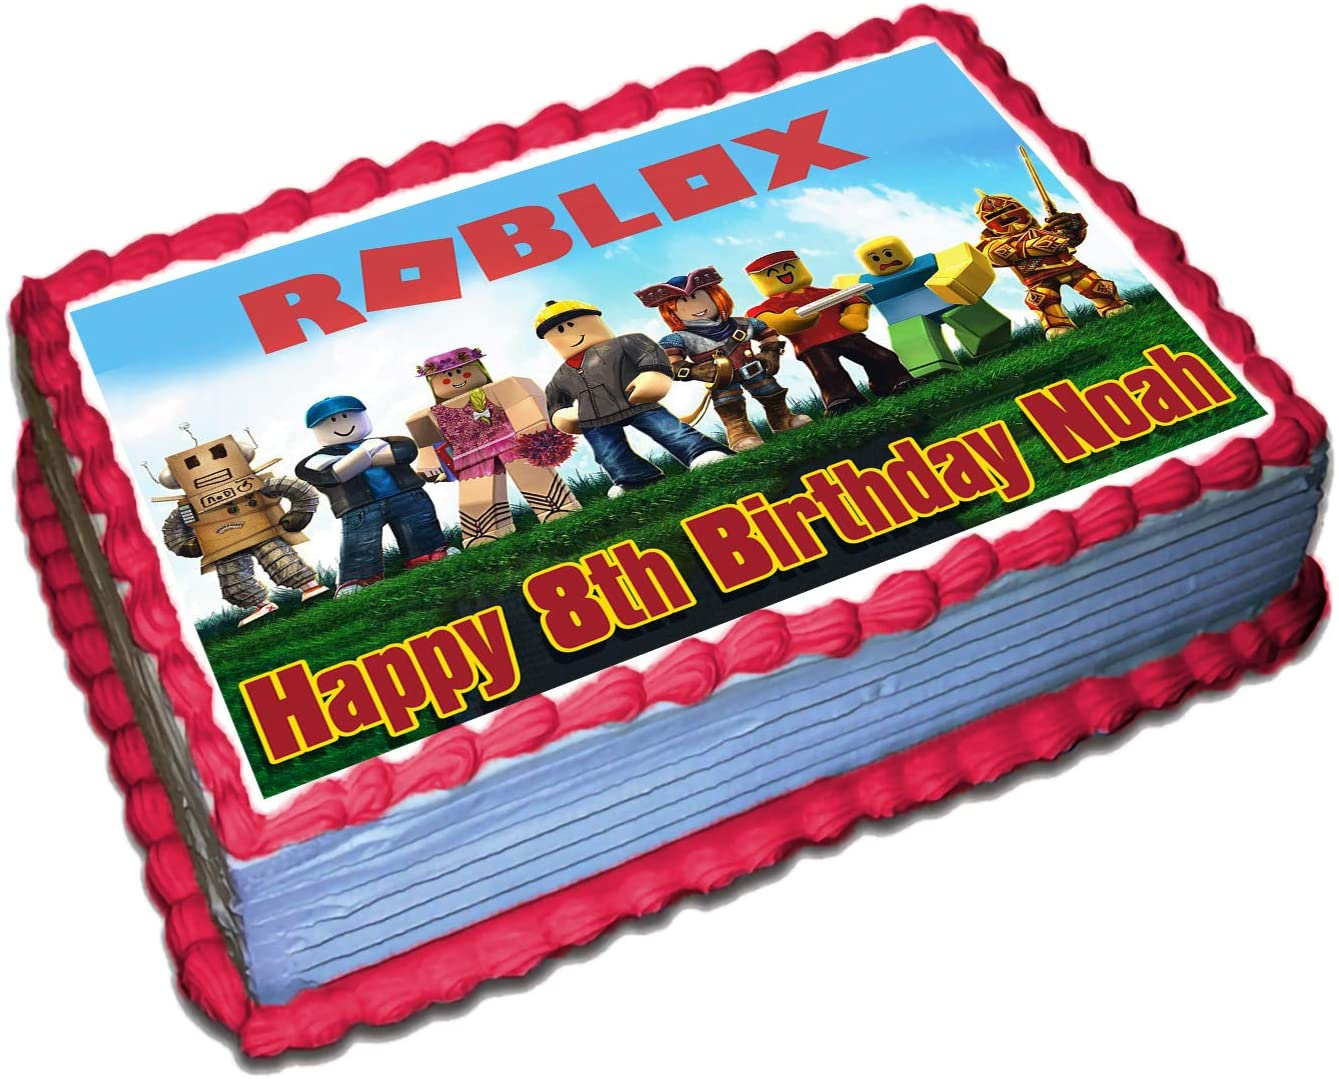 Roblx Personalized Cake Topper 1 4 Ca 2021 new x 8.5 Selling Birthday Inches 11.5